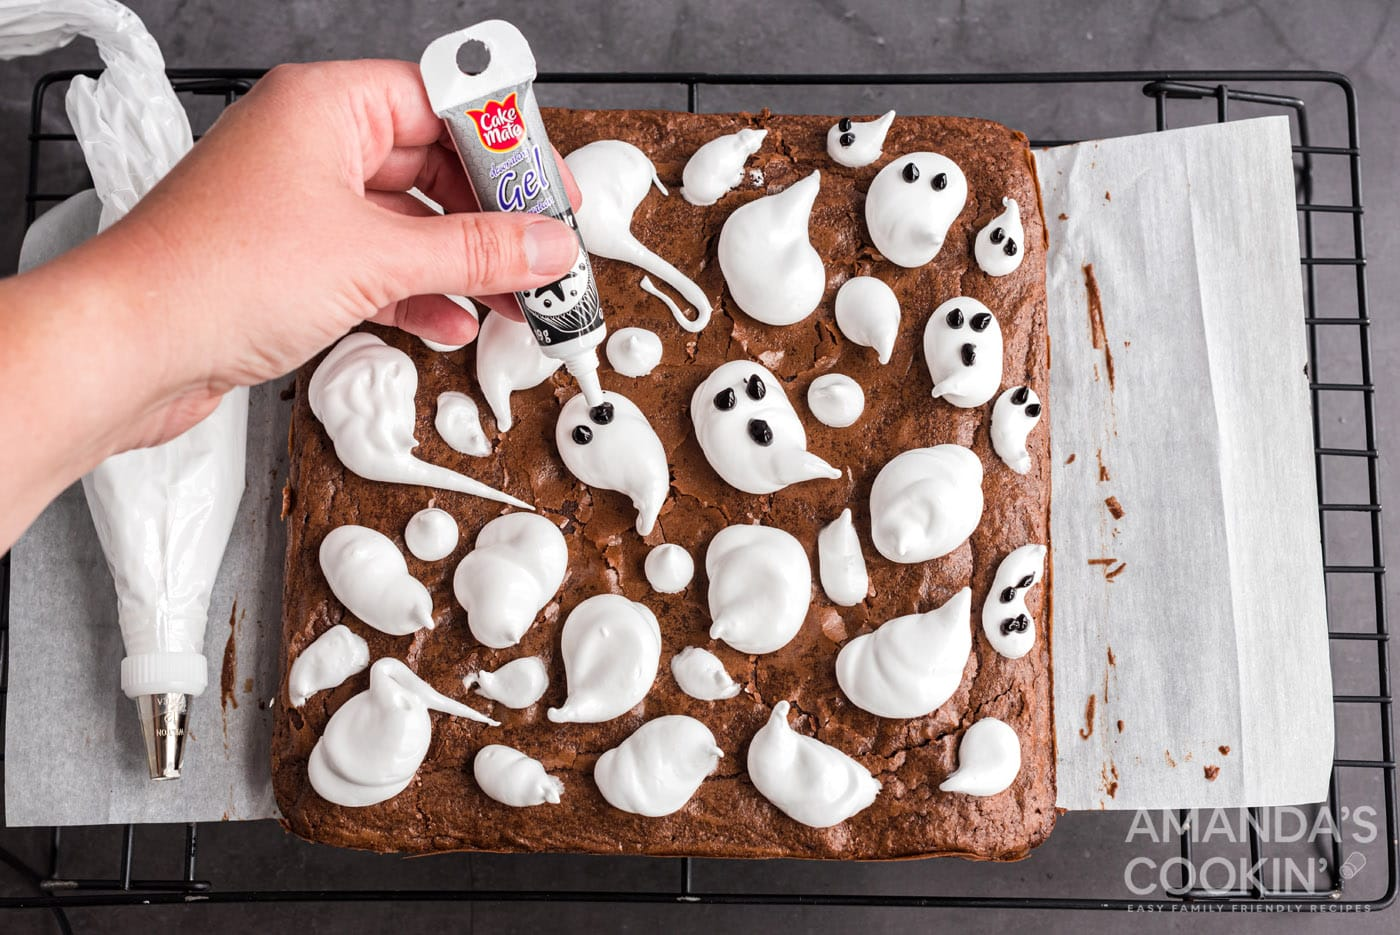 gel icing on marshmallow ghosts to make eyes and mouths